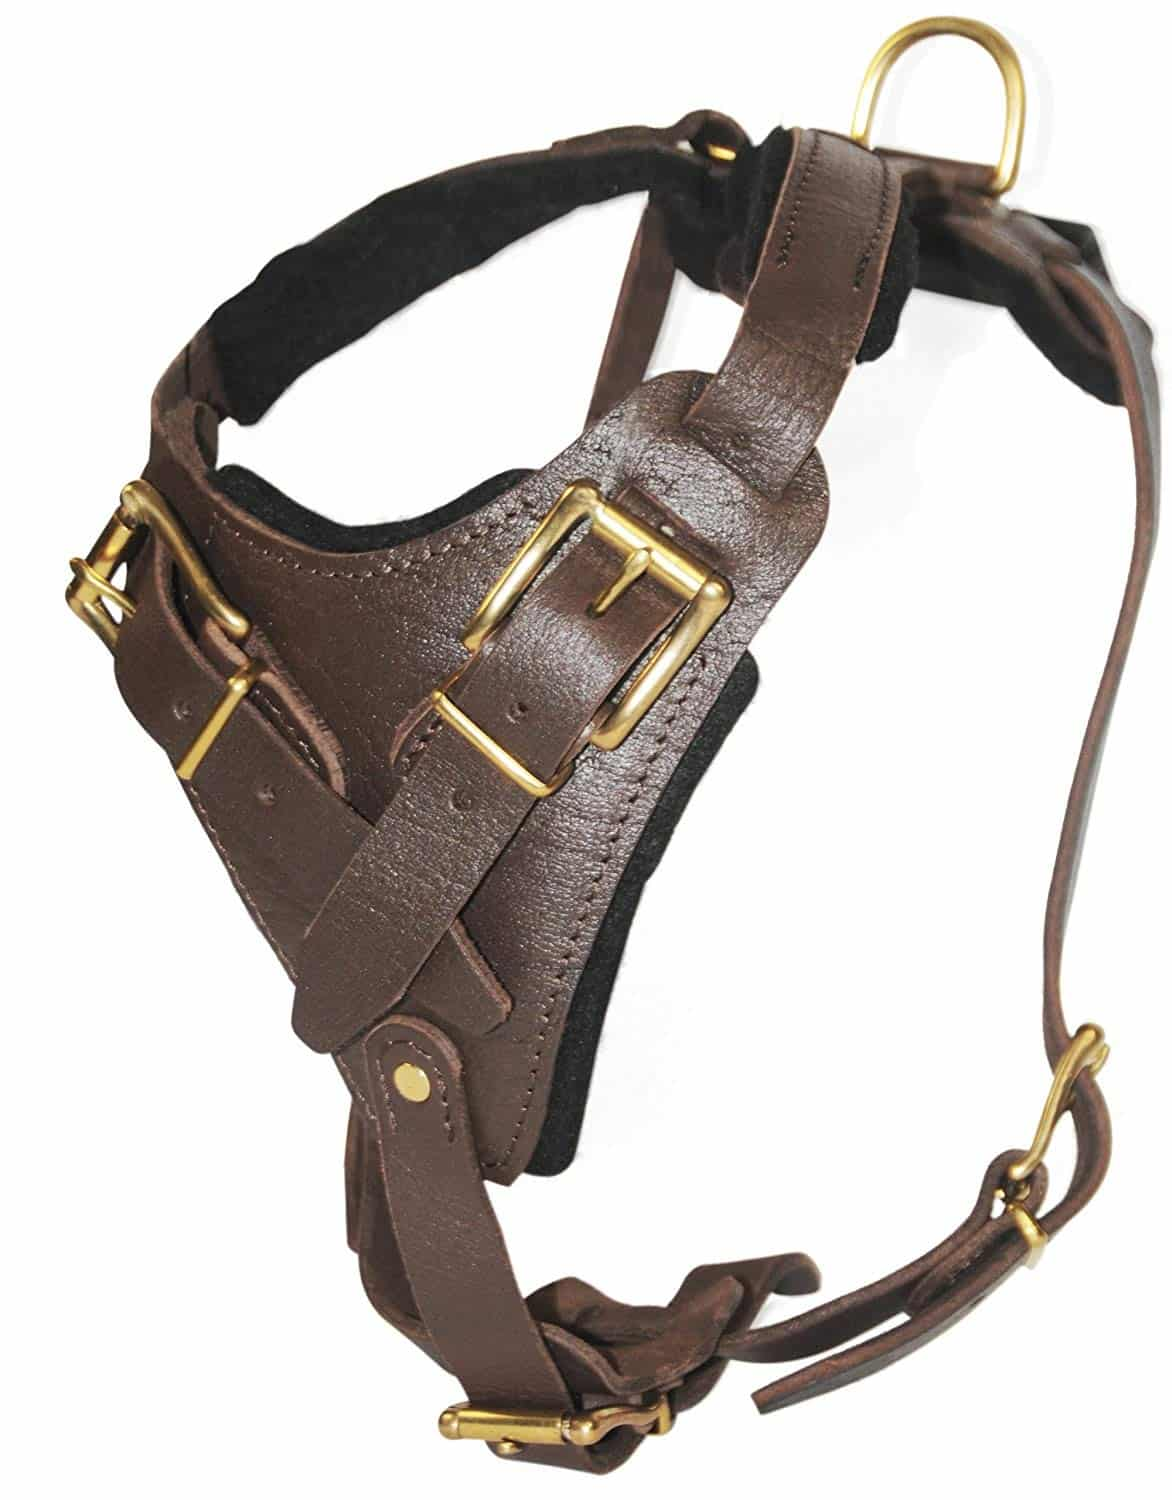 Brass-Belt-Style-Buckles-Leather-Dog-Harness